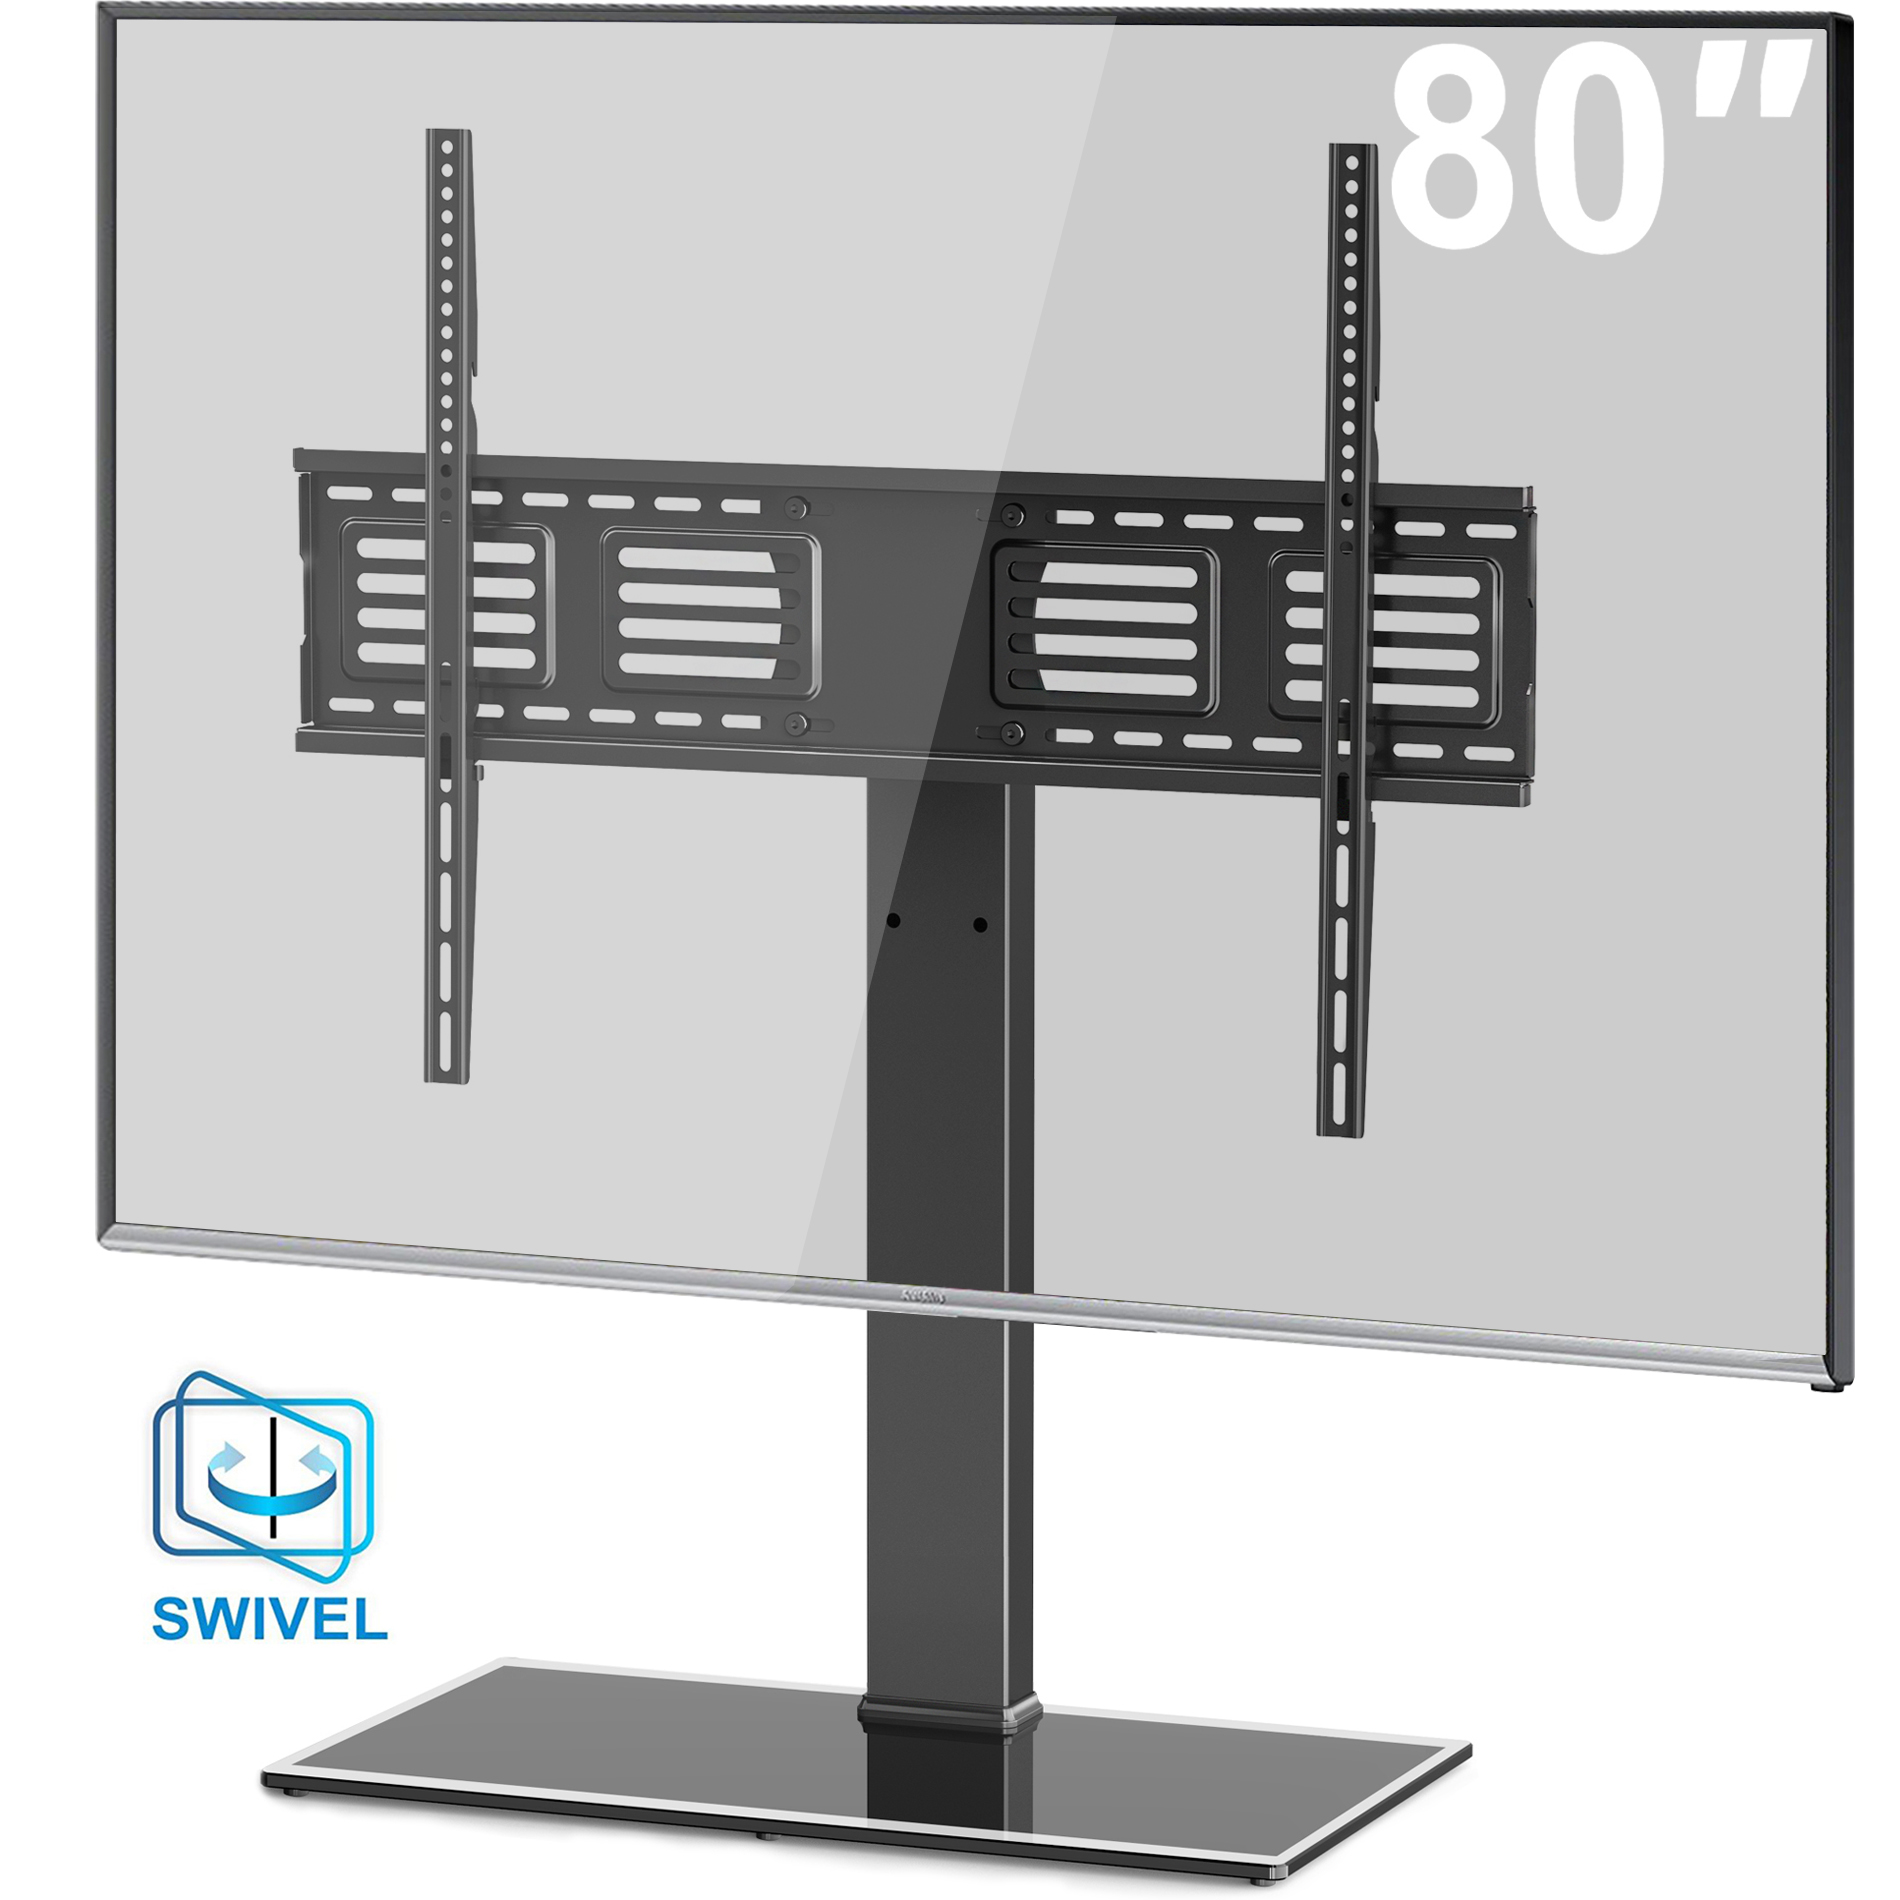 FITUEYES Universal TV Stand Swivel Tabletop TV Stand with Mount for 50 to 80 inch Flat screen Tvs TT107003GB